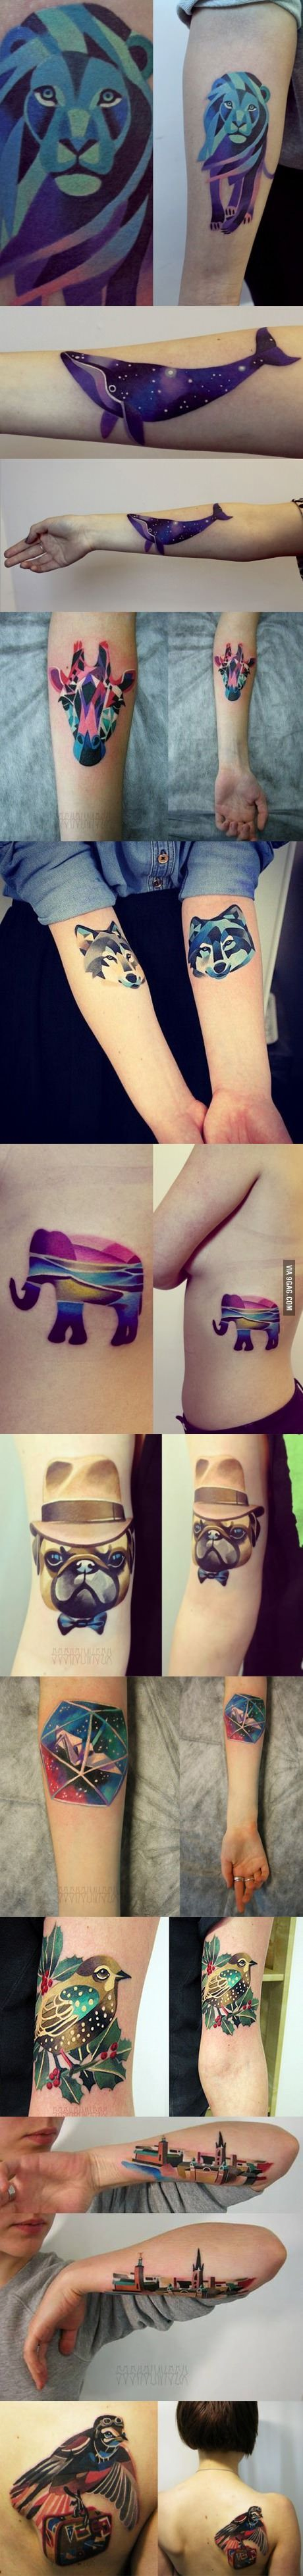 best tattoo images on pinterest inspiration tattoos tattoo